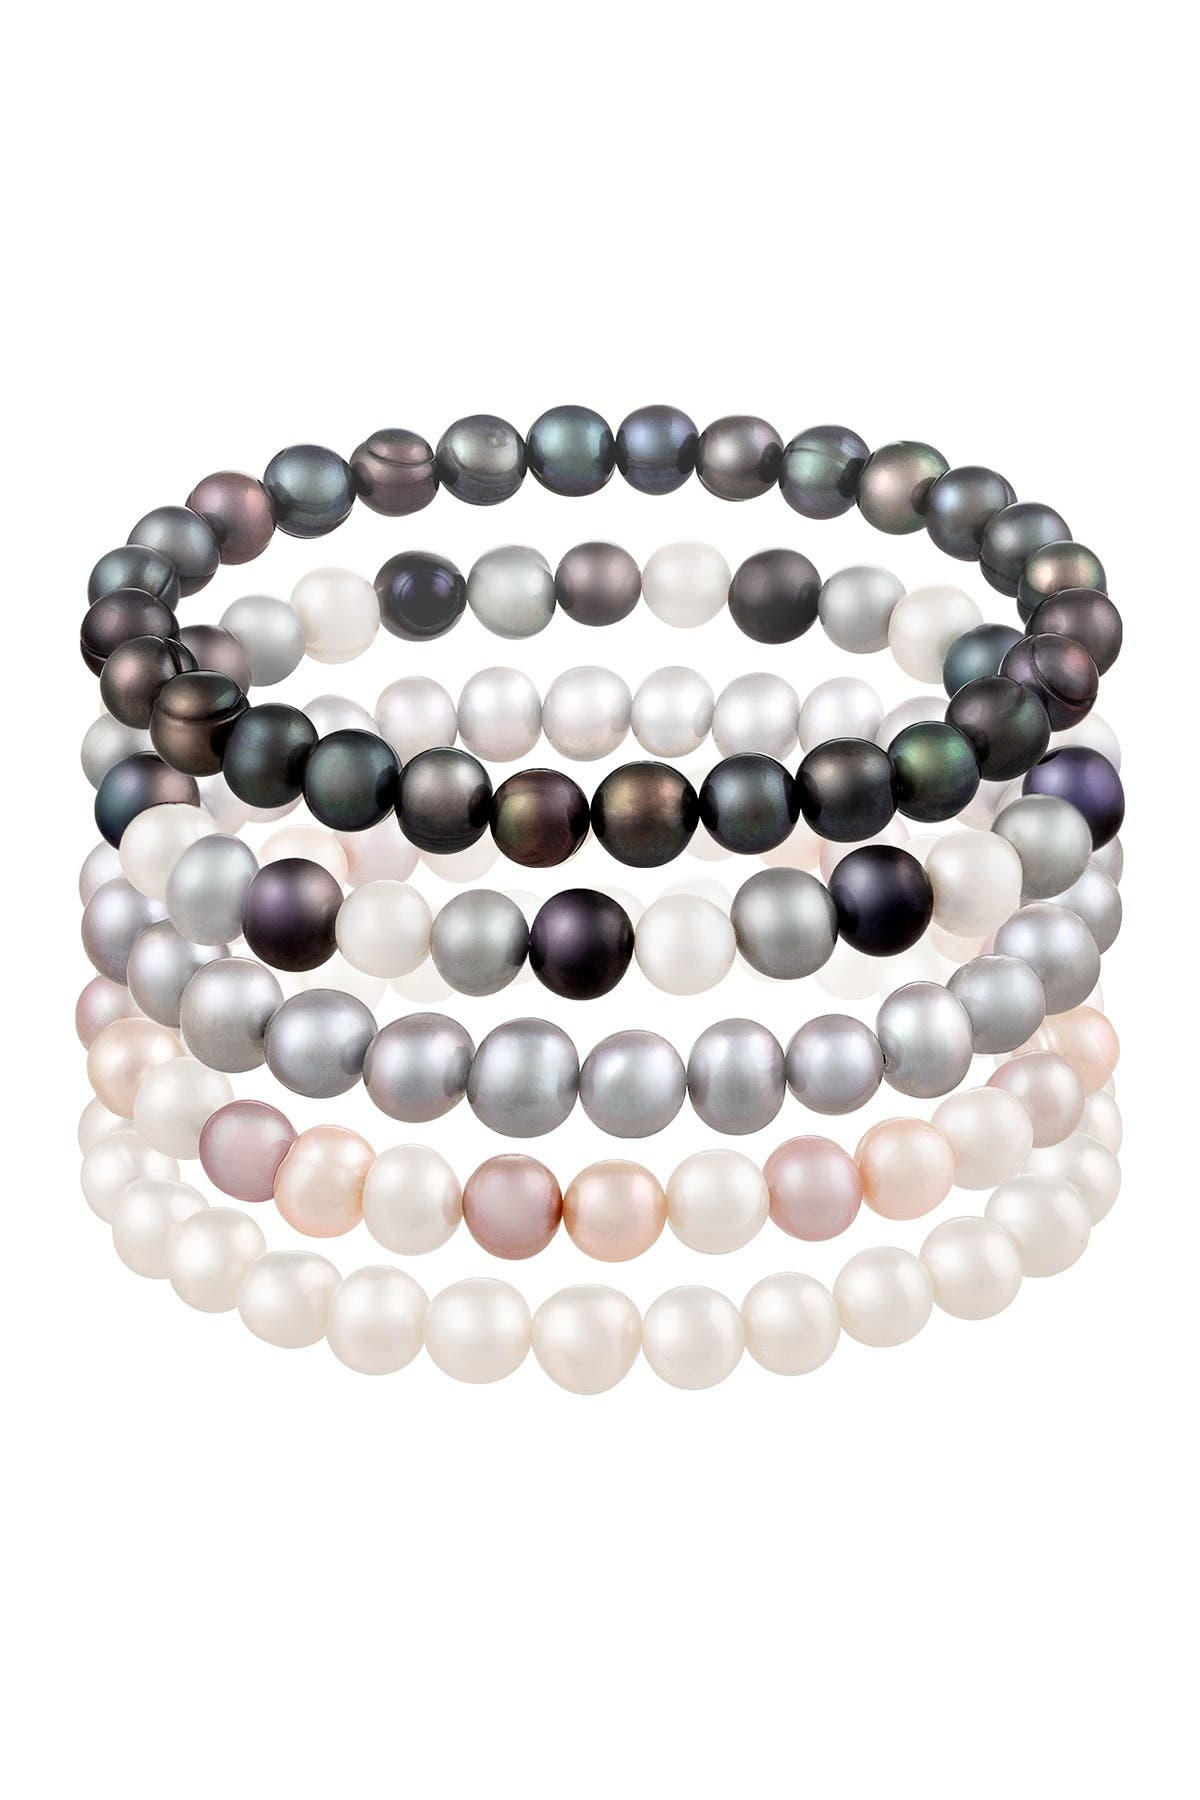 Splendid Pearls 6-7mm Multicolor Freshwater Pearl Stretch Bracelet Set at Nordstrom Rack